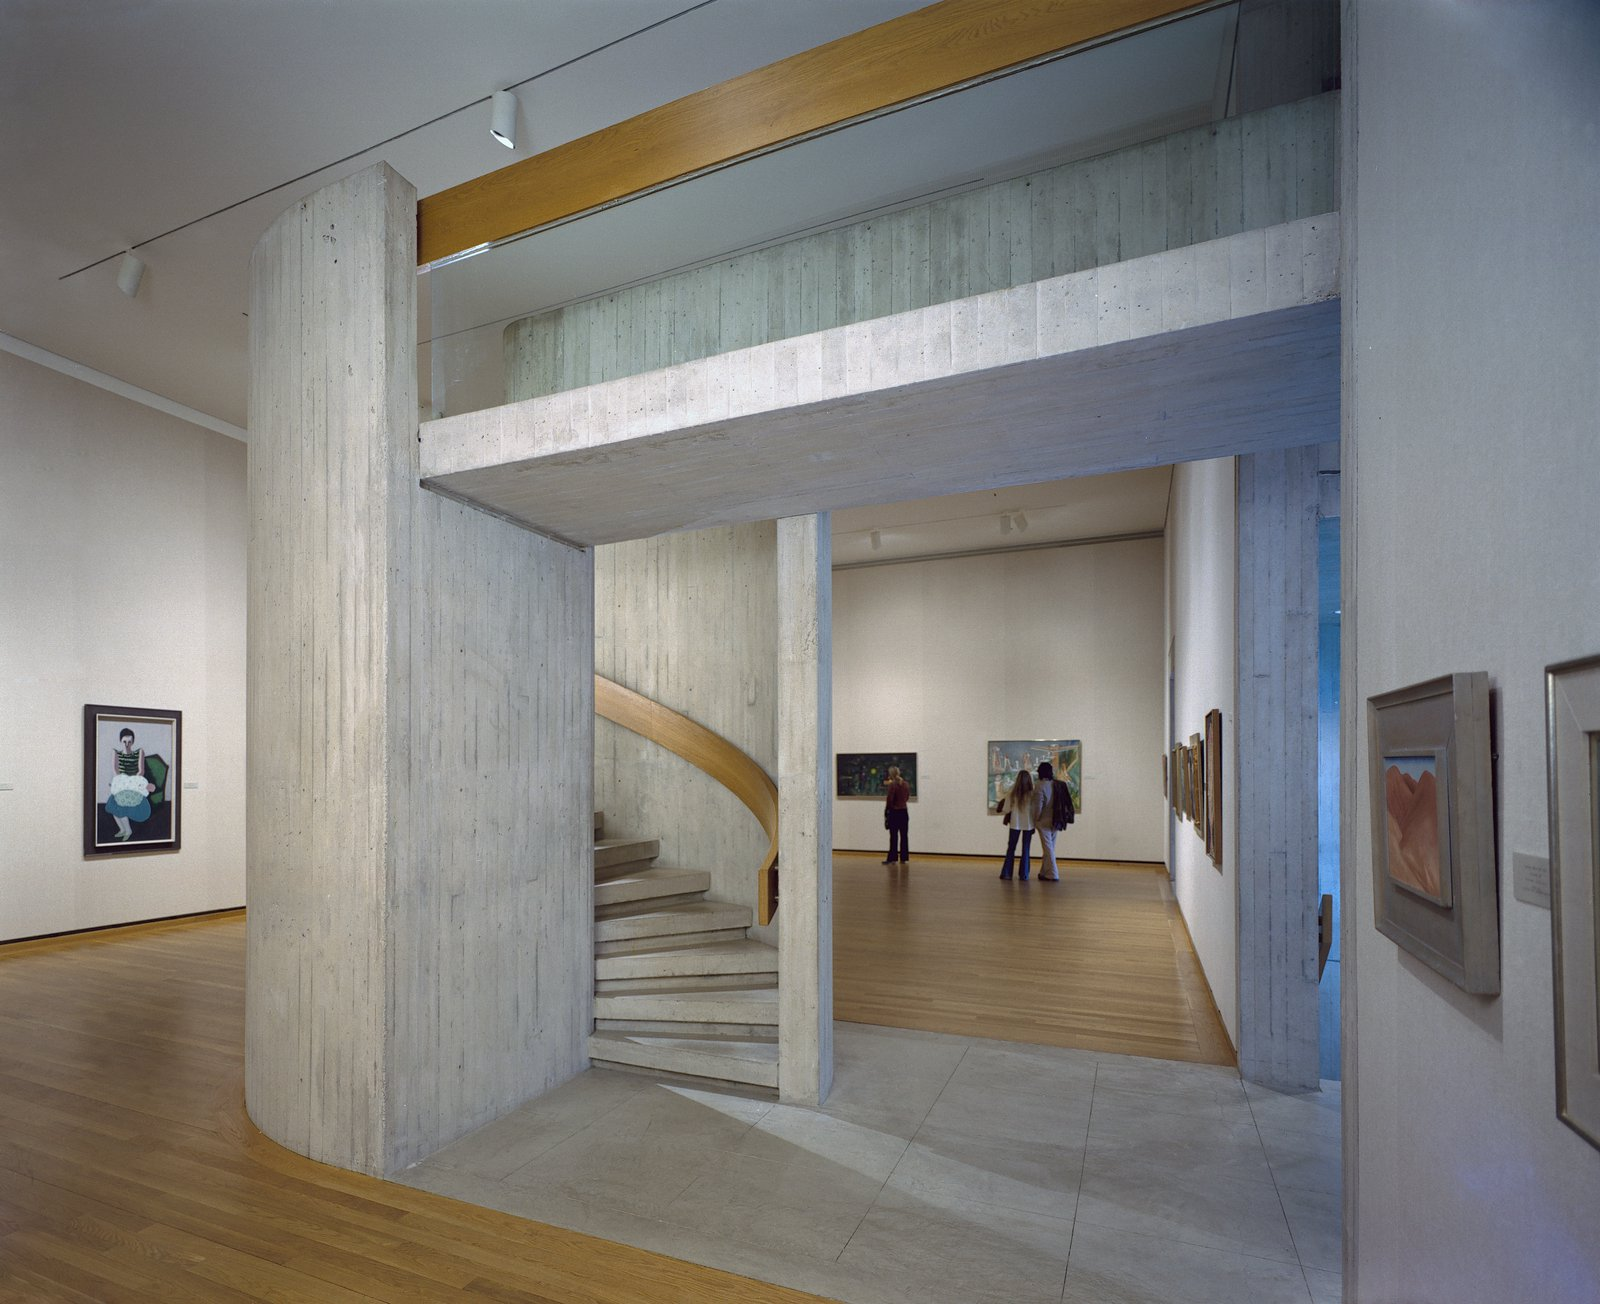 Herbert F. Johnson Museum of Art, Cornell University, United States